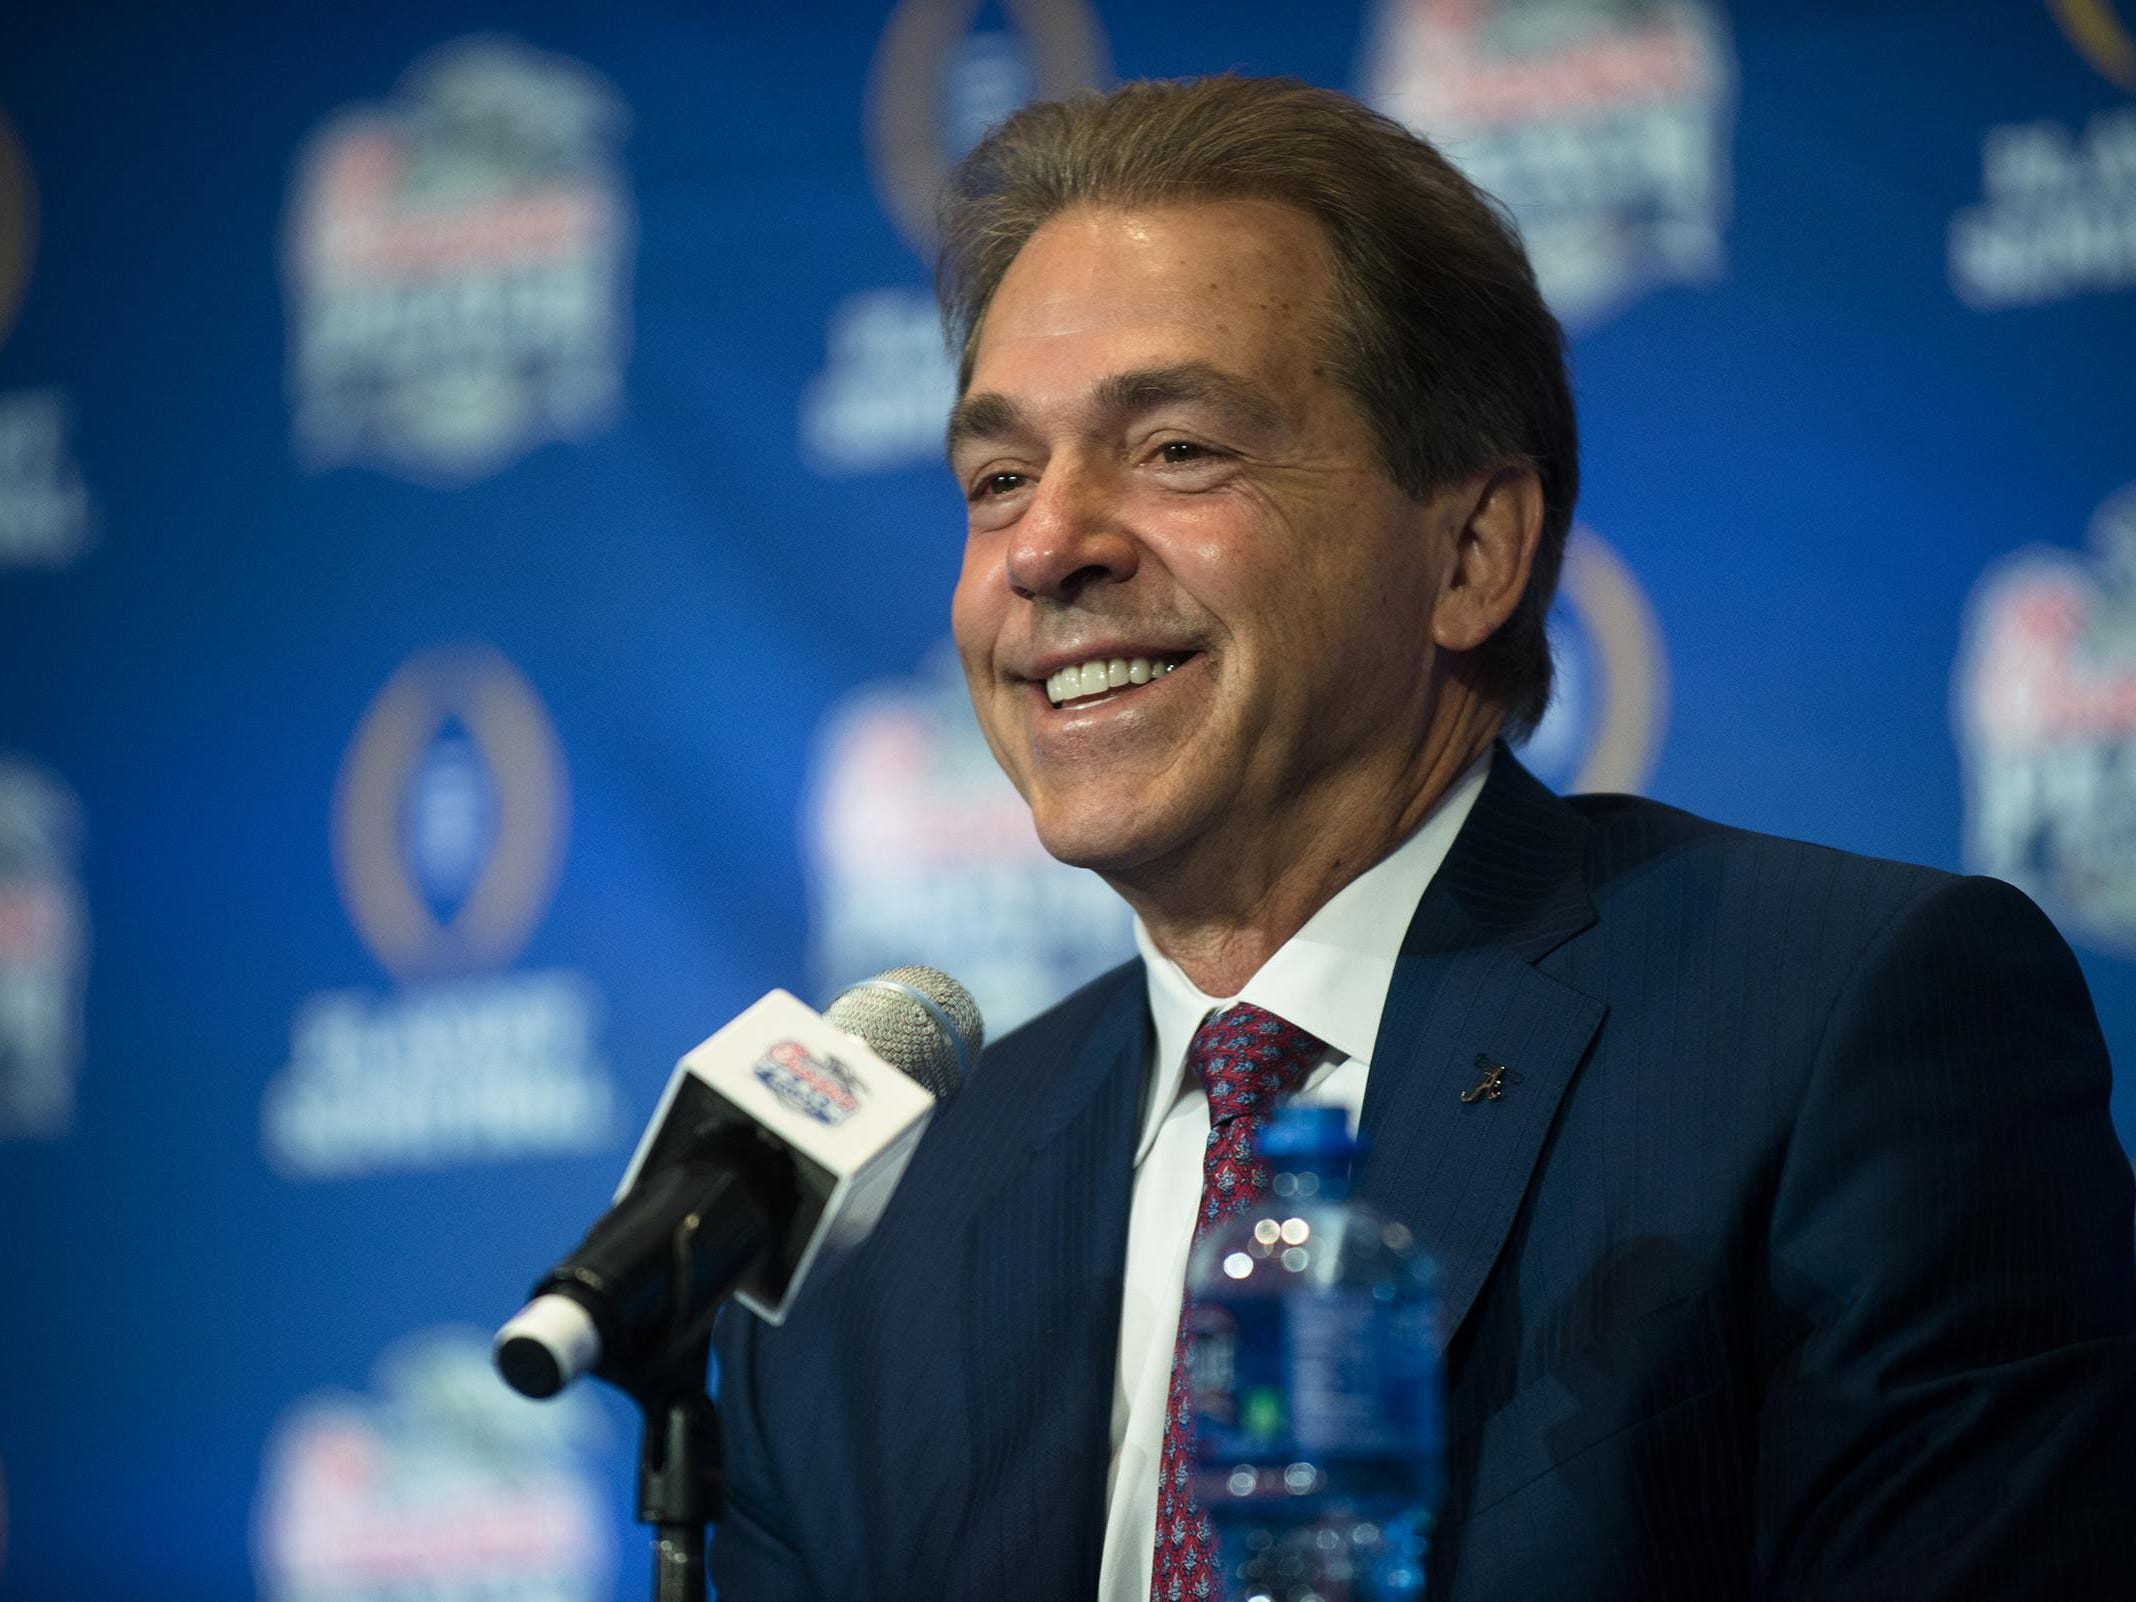 Alabama head coach Nick Saban speaks during the coaches press conference on Friday, Dec. 30, 2016, in Atlanta, Ga., for the Peach Bowl.